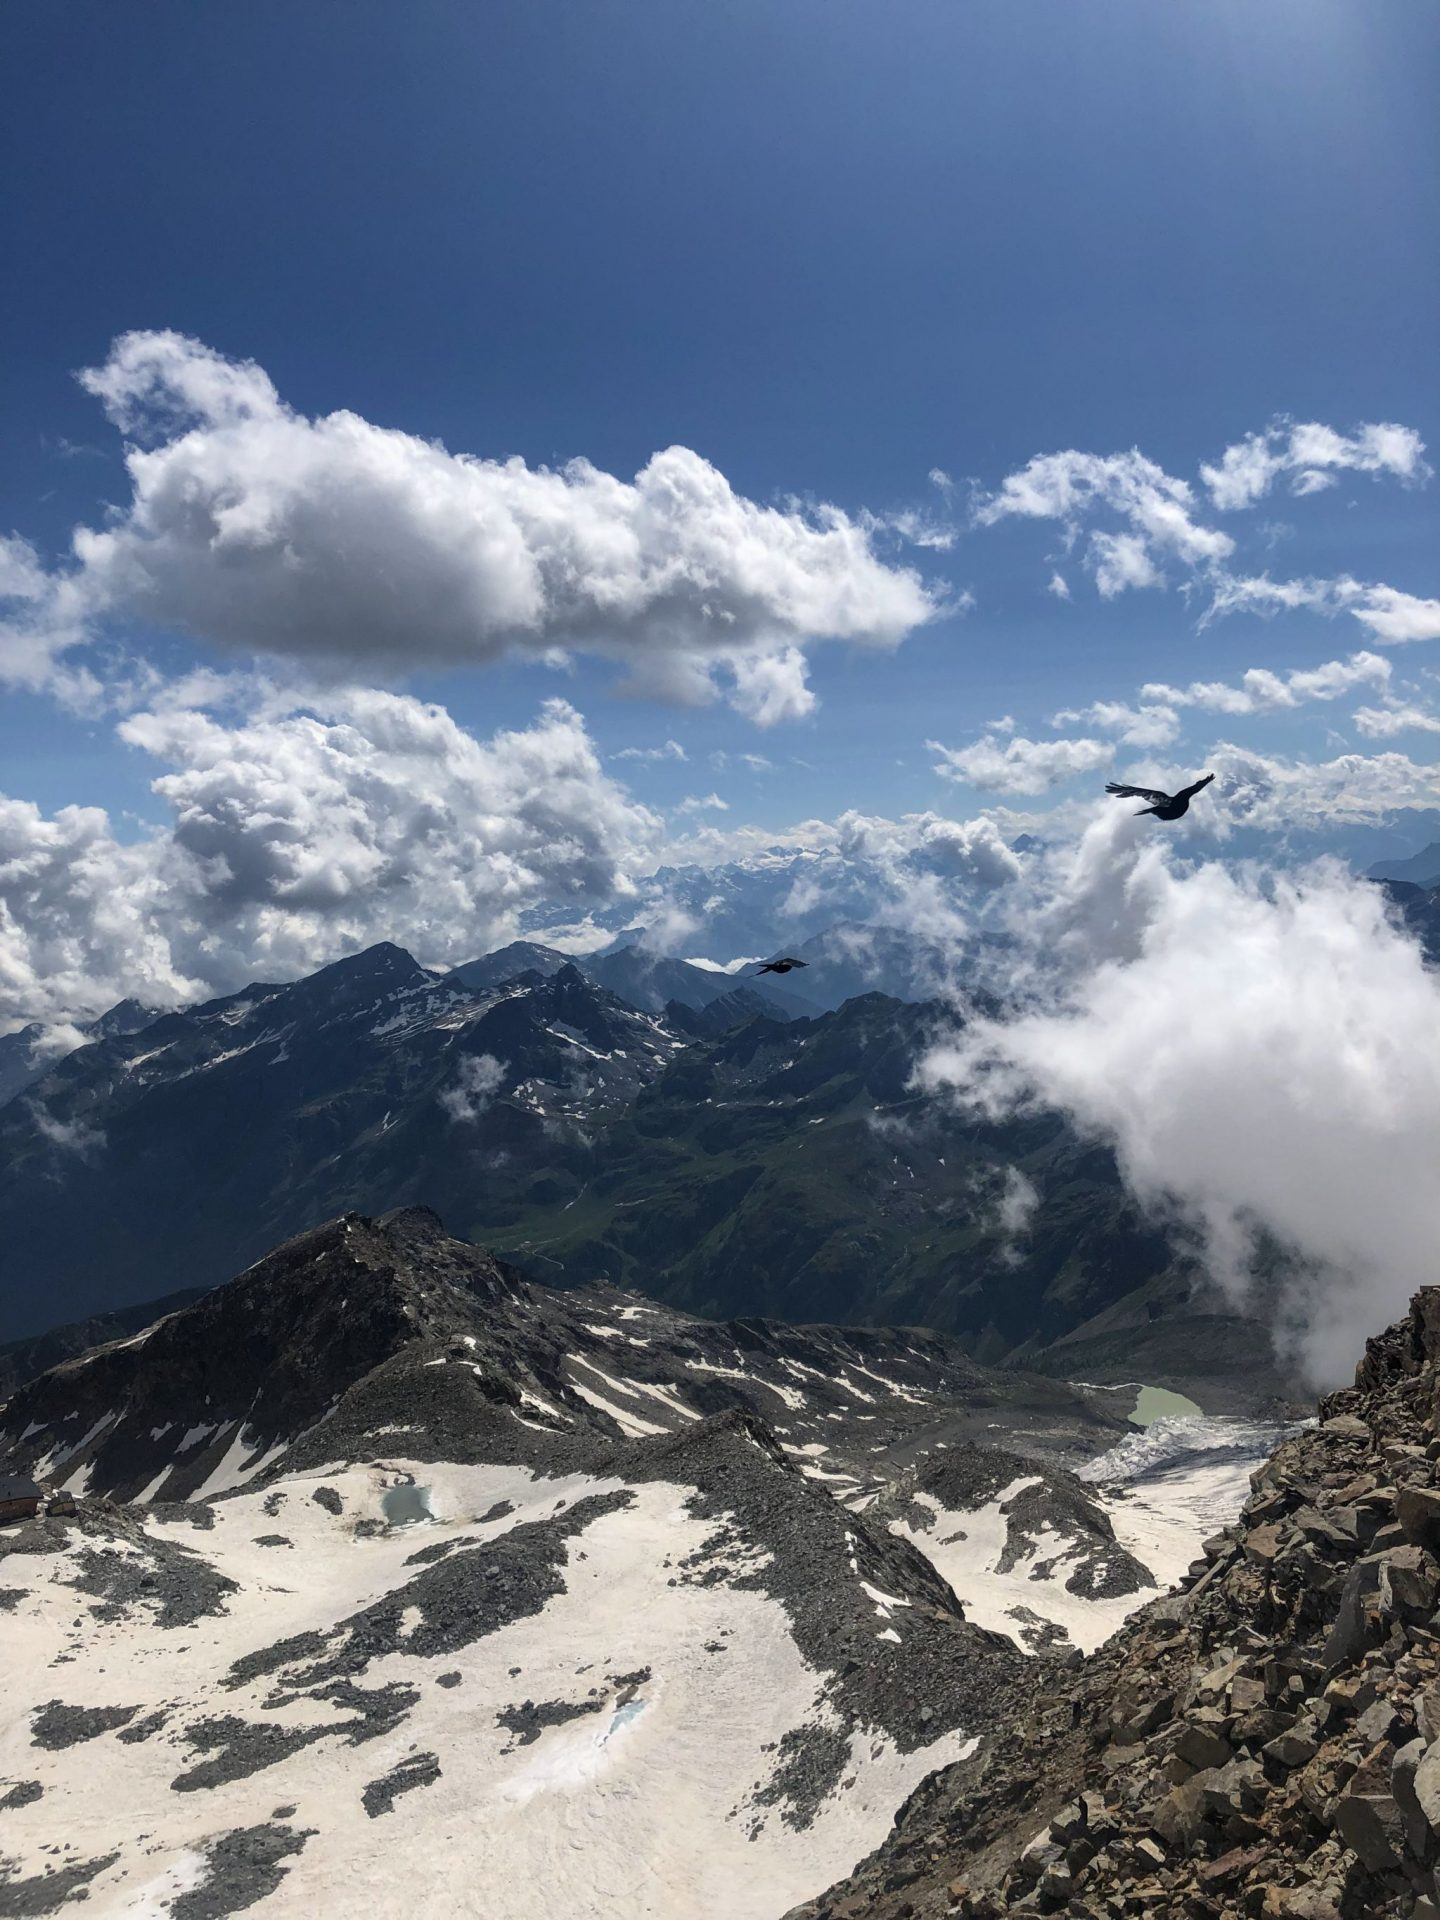 View from the Gnifetti mountain hut